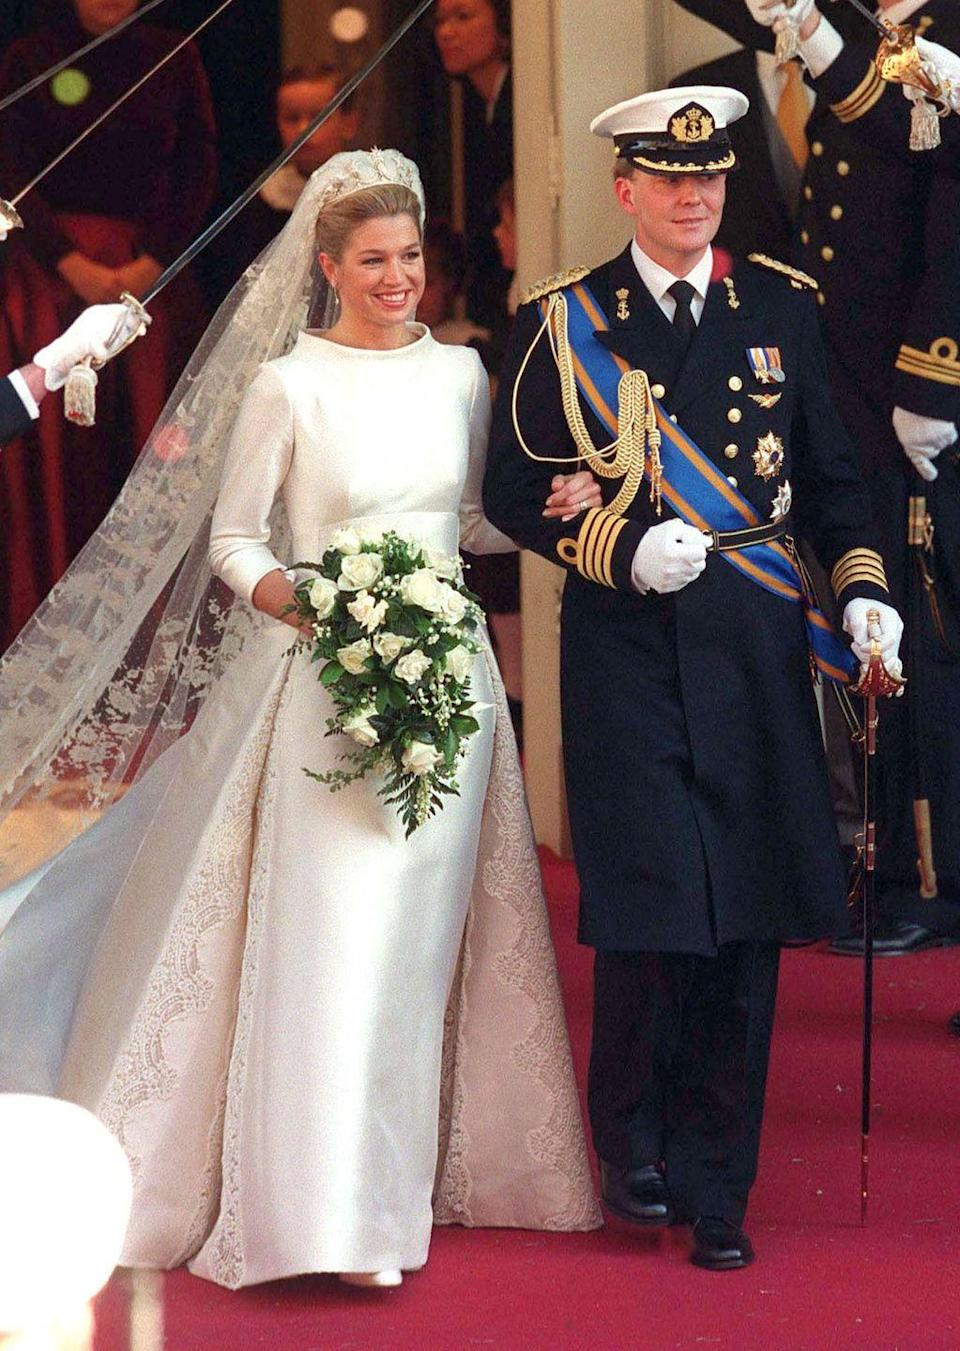 <p>Queen Máxima wore a long-sleeve sheath dress with a high neckline and a lace veil when she married King Willem-Alexander.</p>